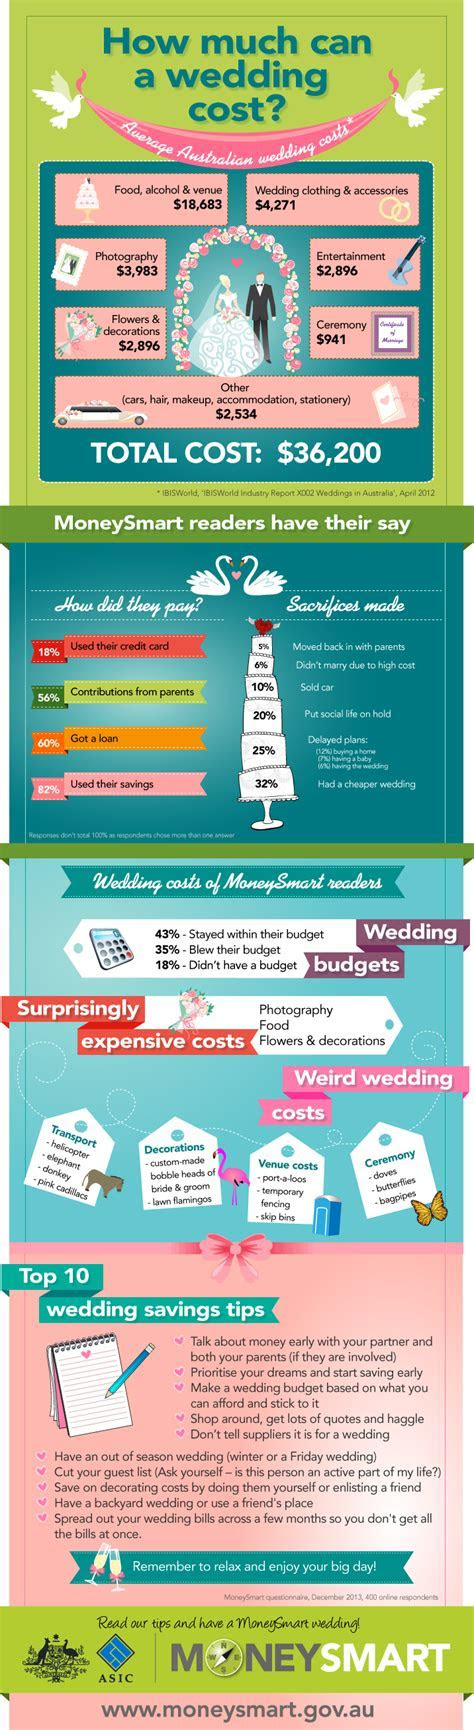 The Average Australian Wedding Costs $36,200 [Infographic